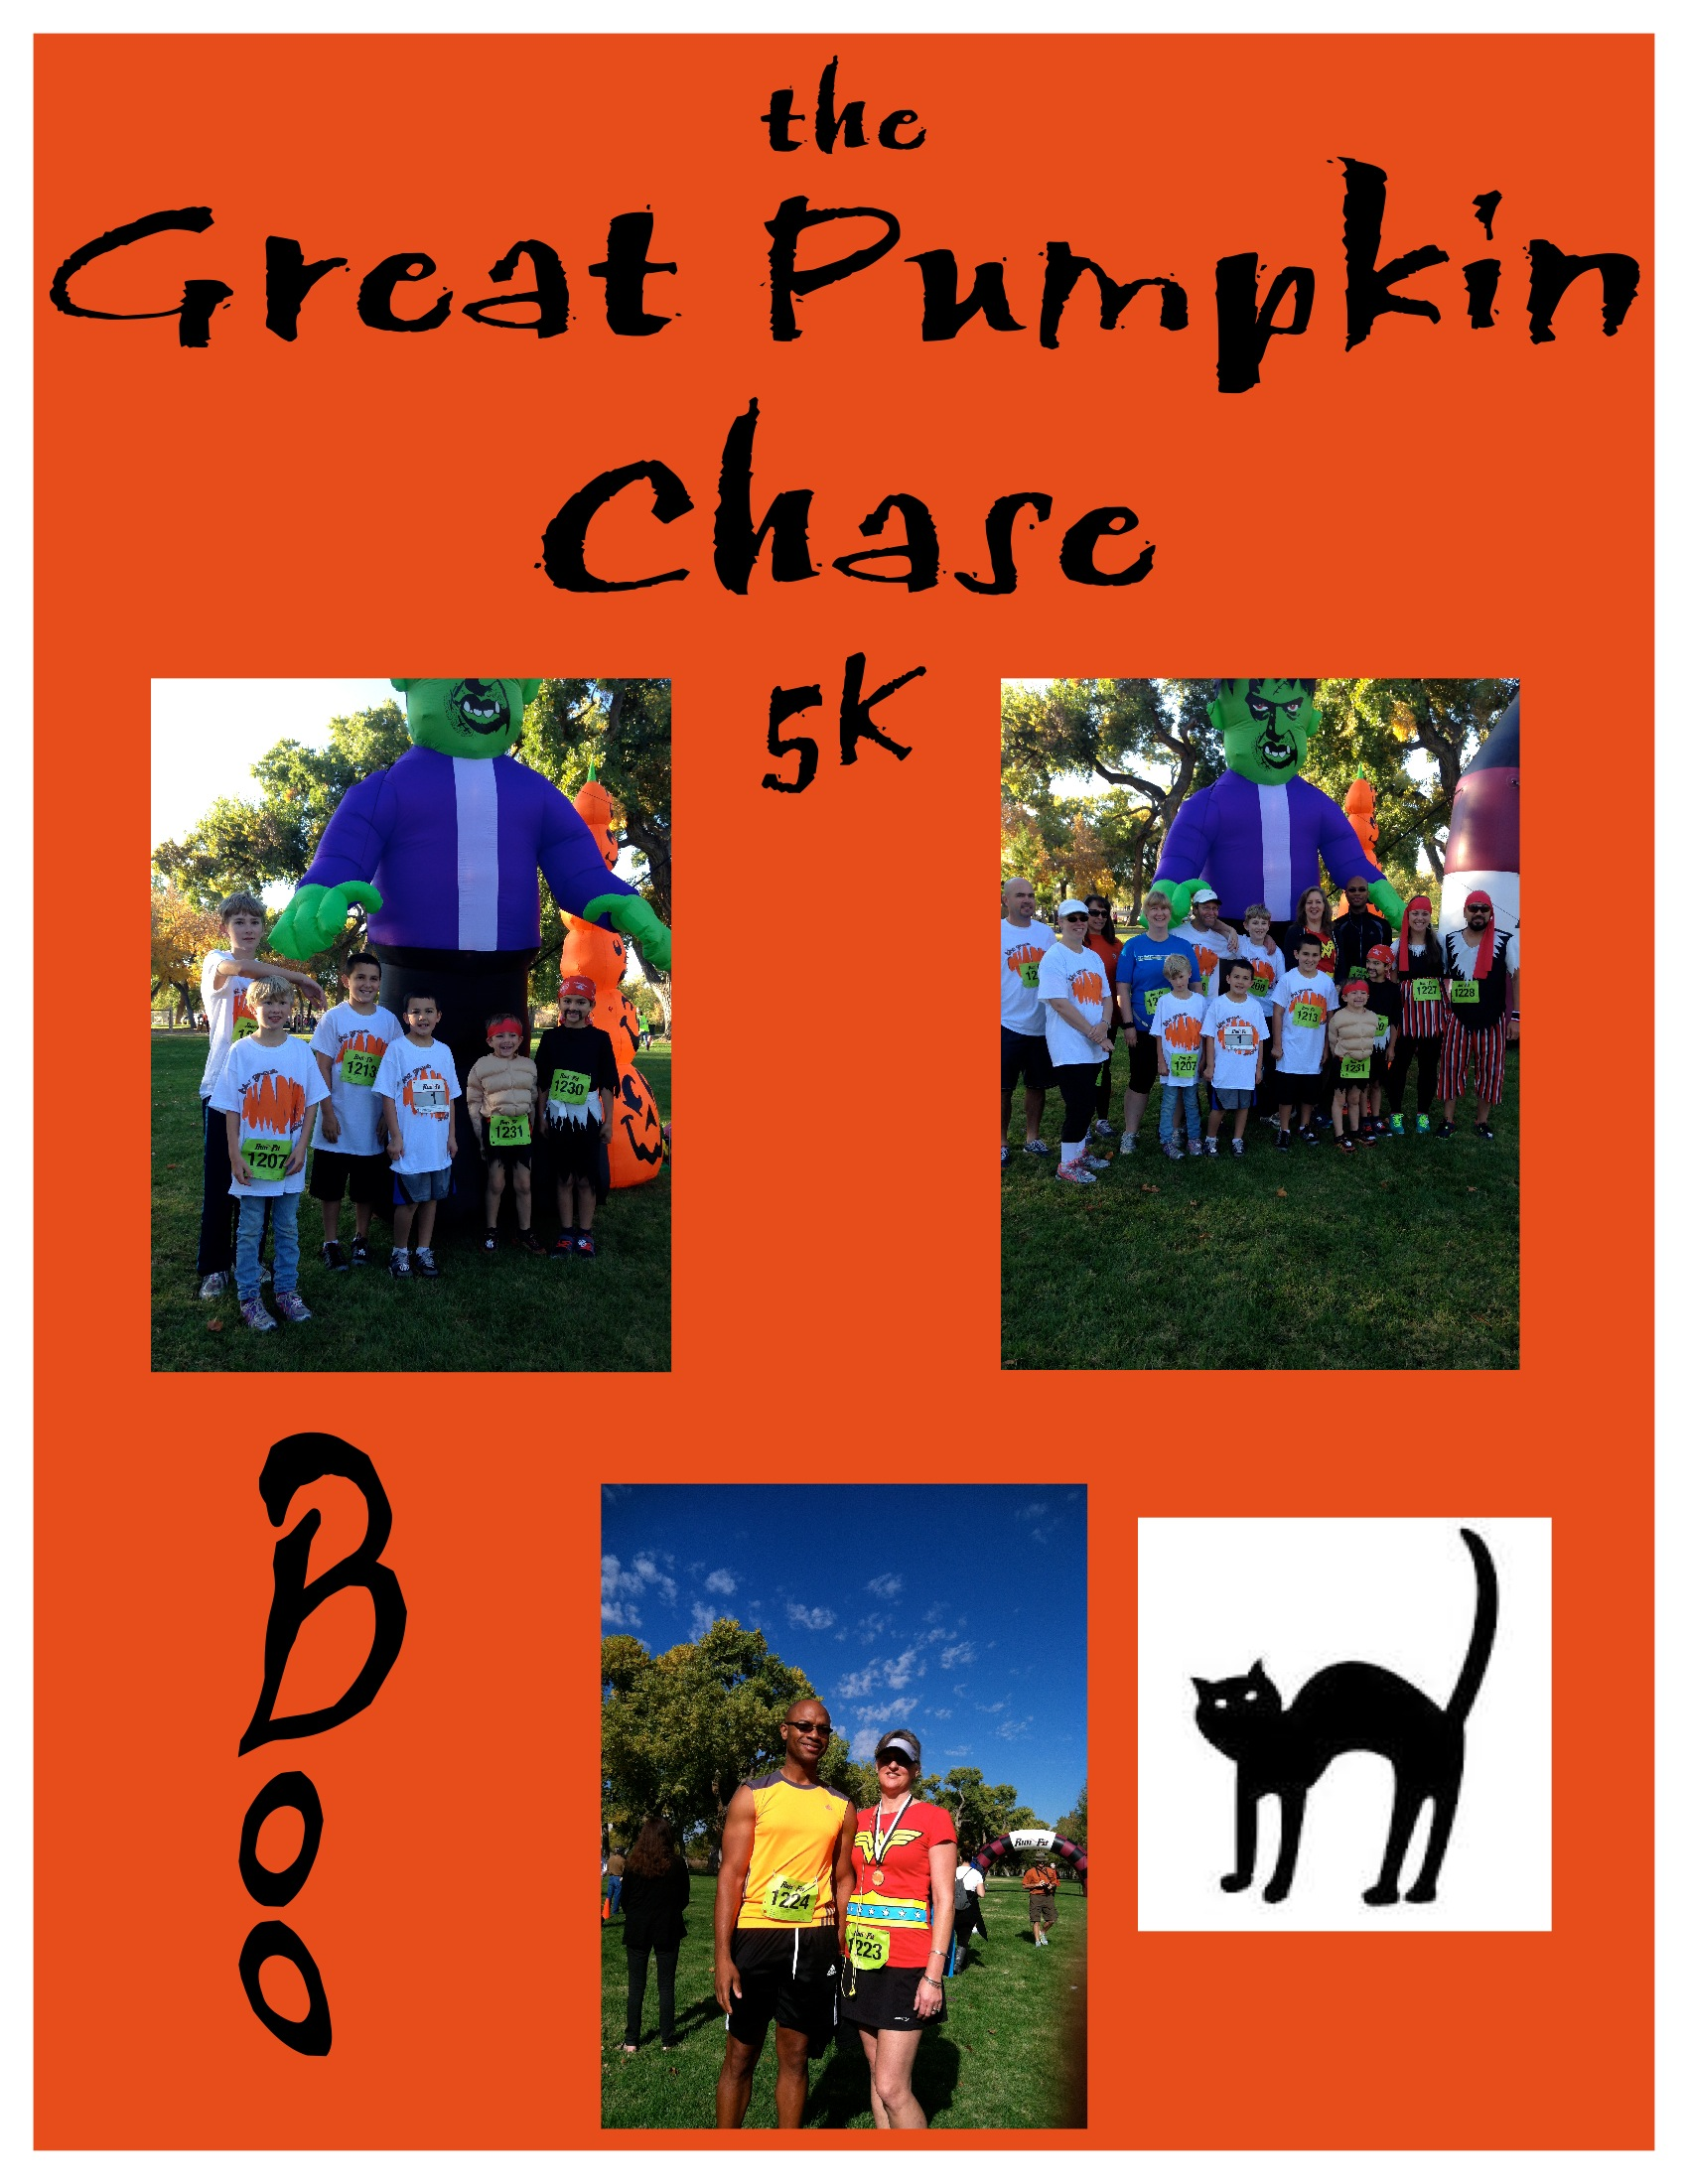 Great Pumpkin Chase